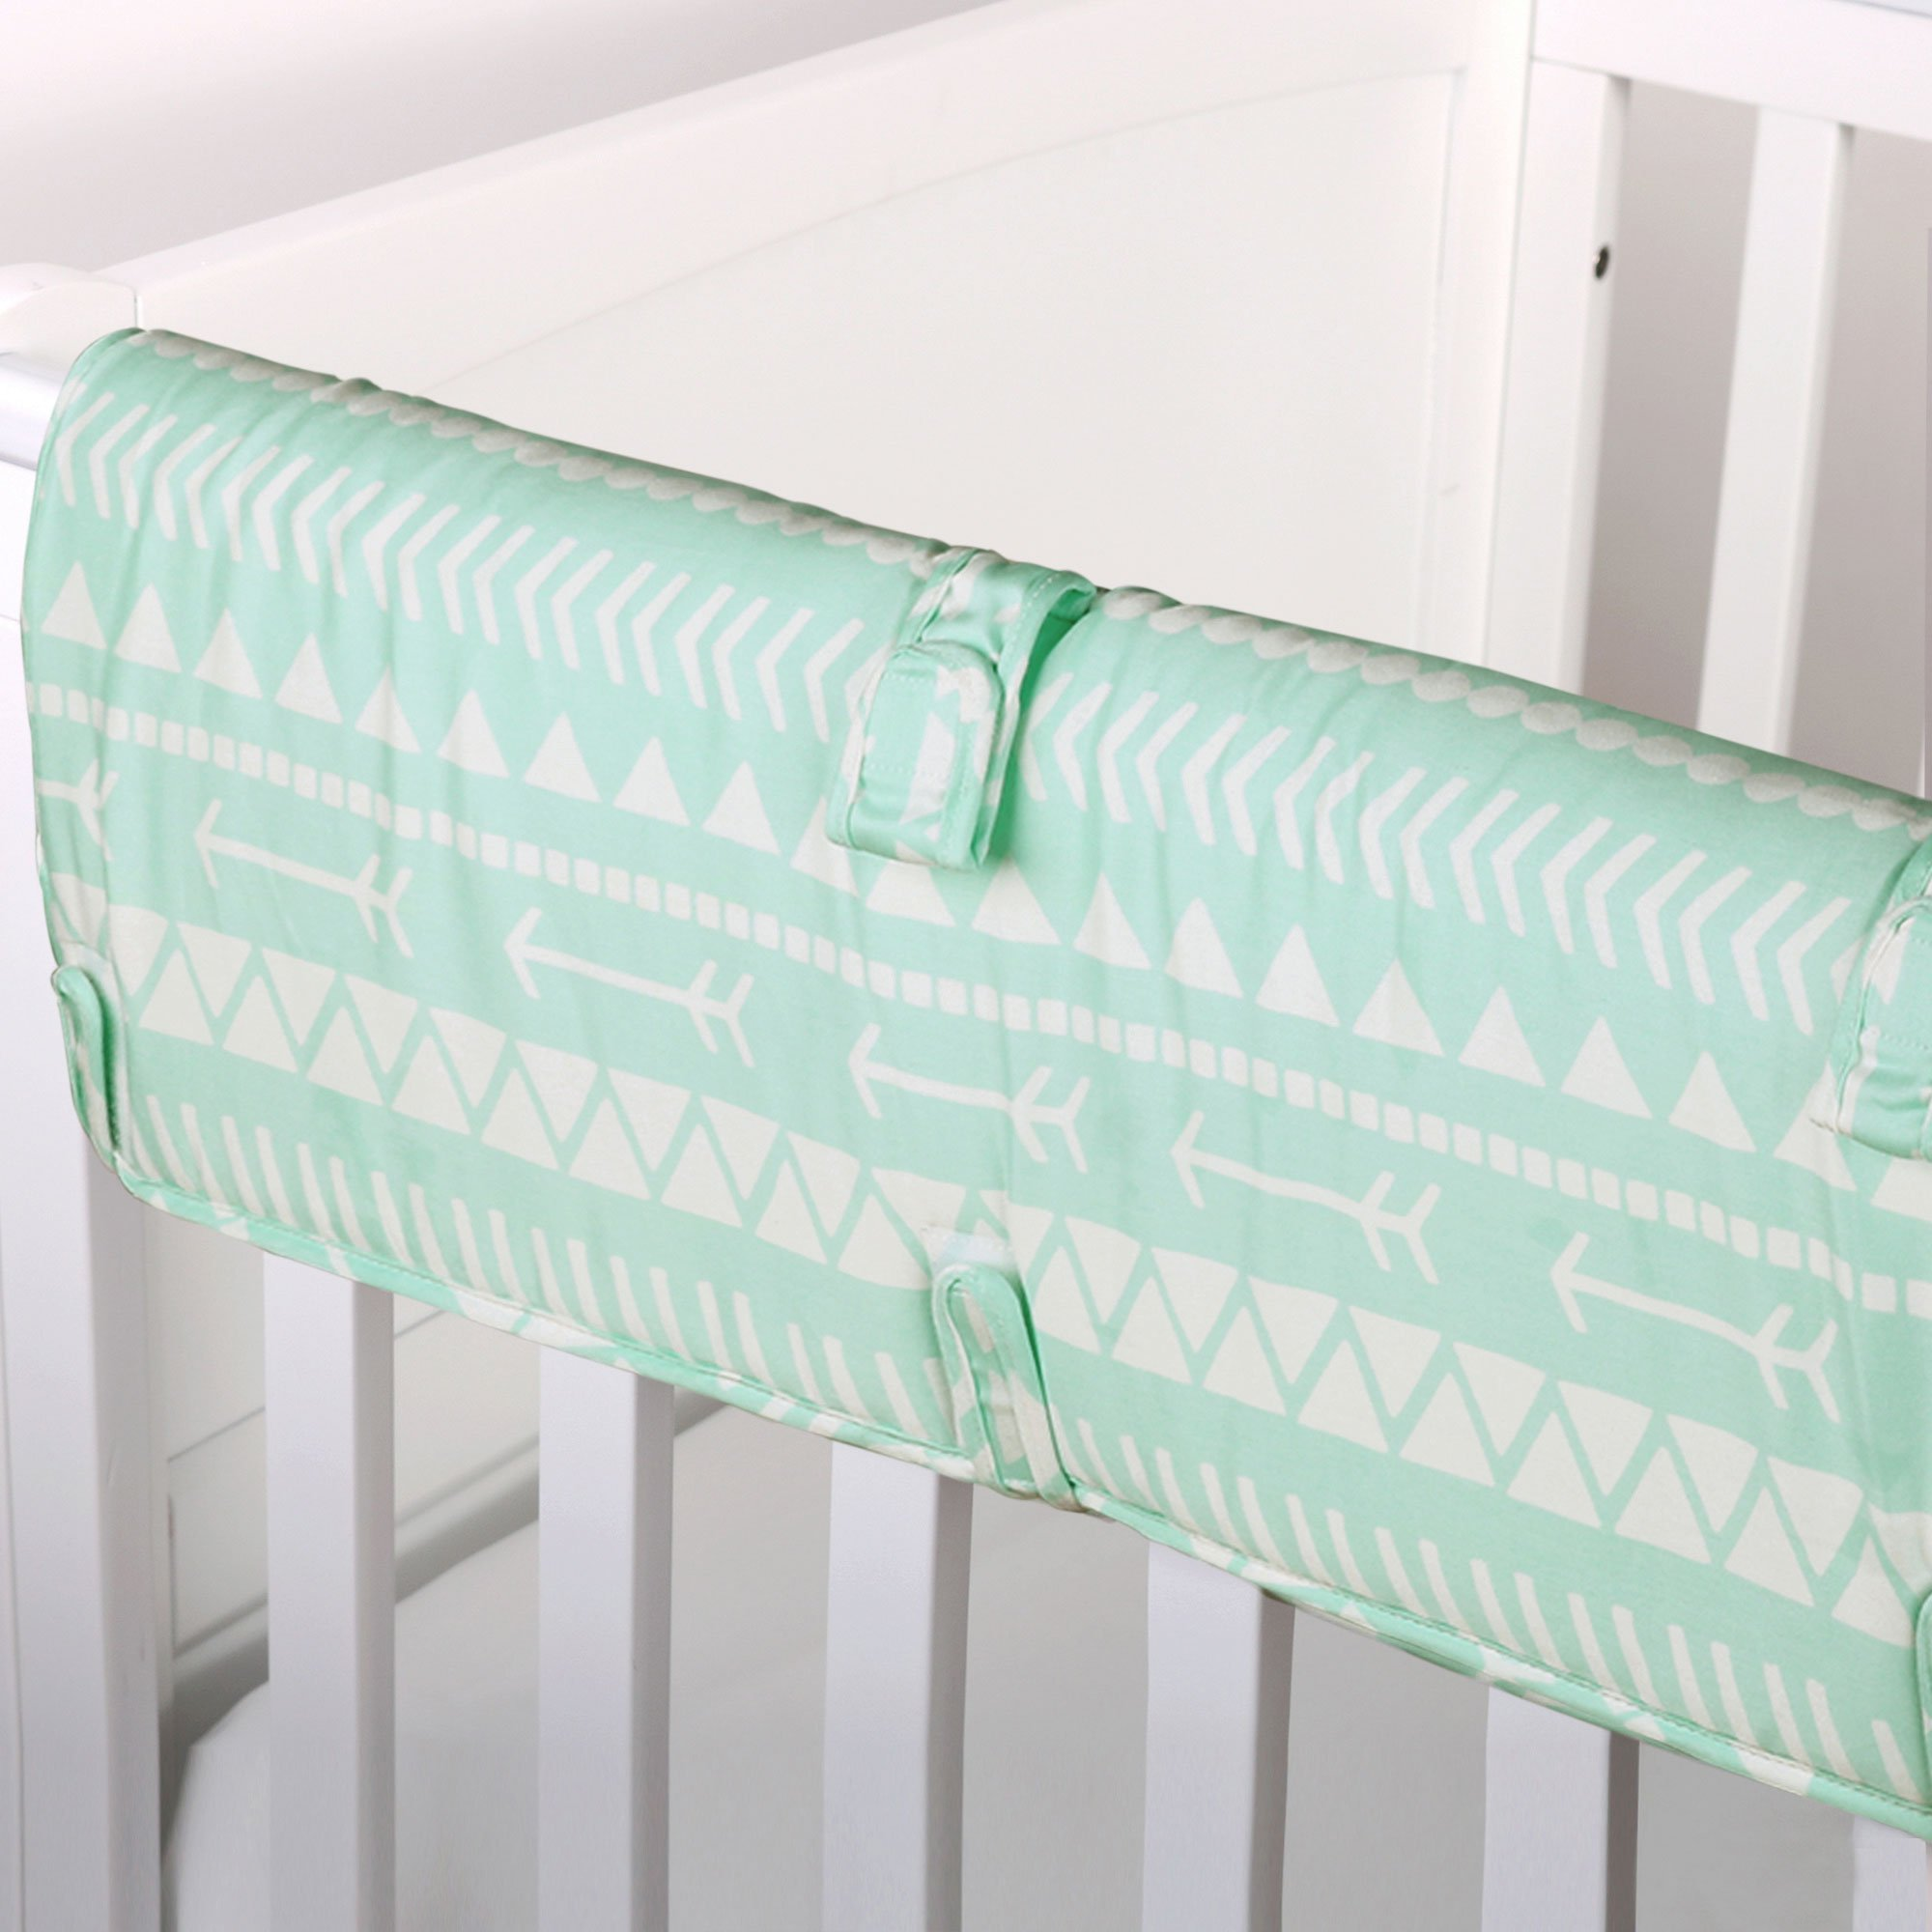 Mint Green Tribal Print 100% Cotton Padded Crib Rail Guard by The Peanut Shell by The Peanut Shell (Image #1)